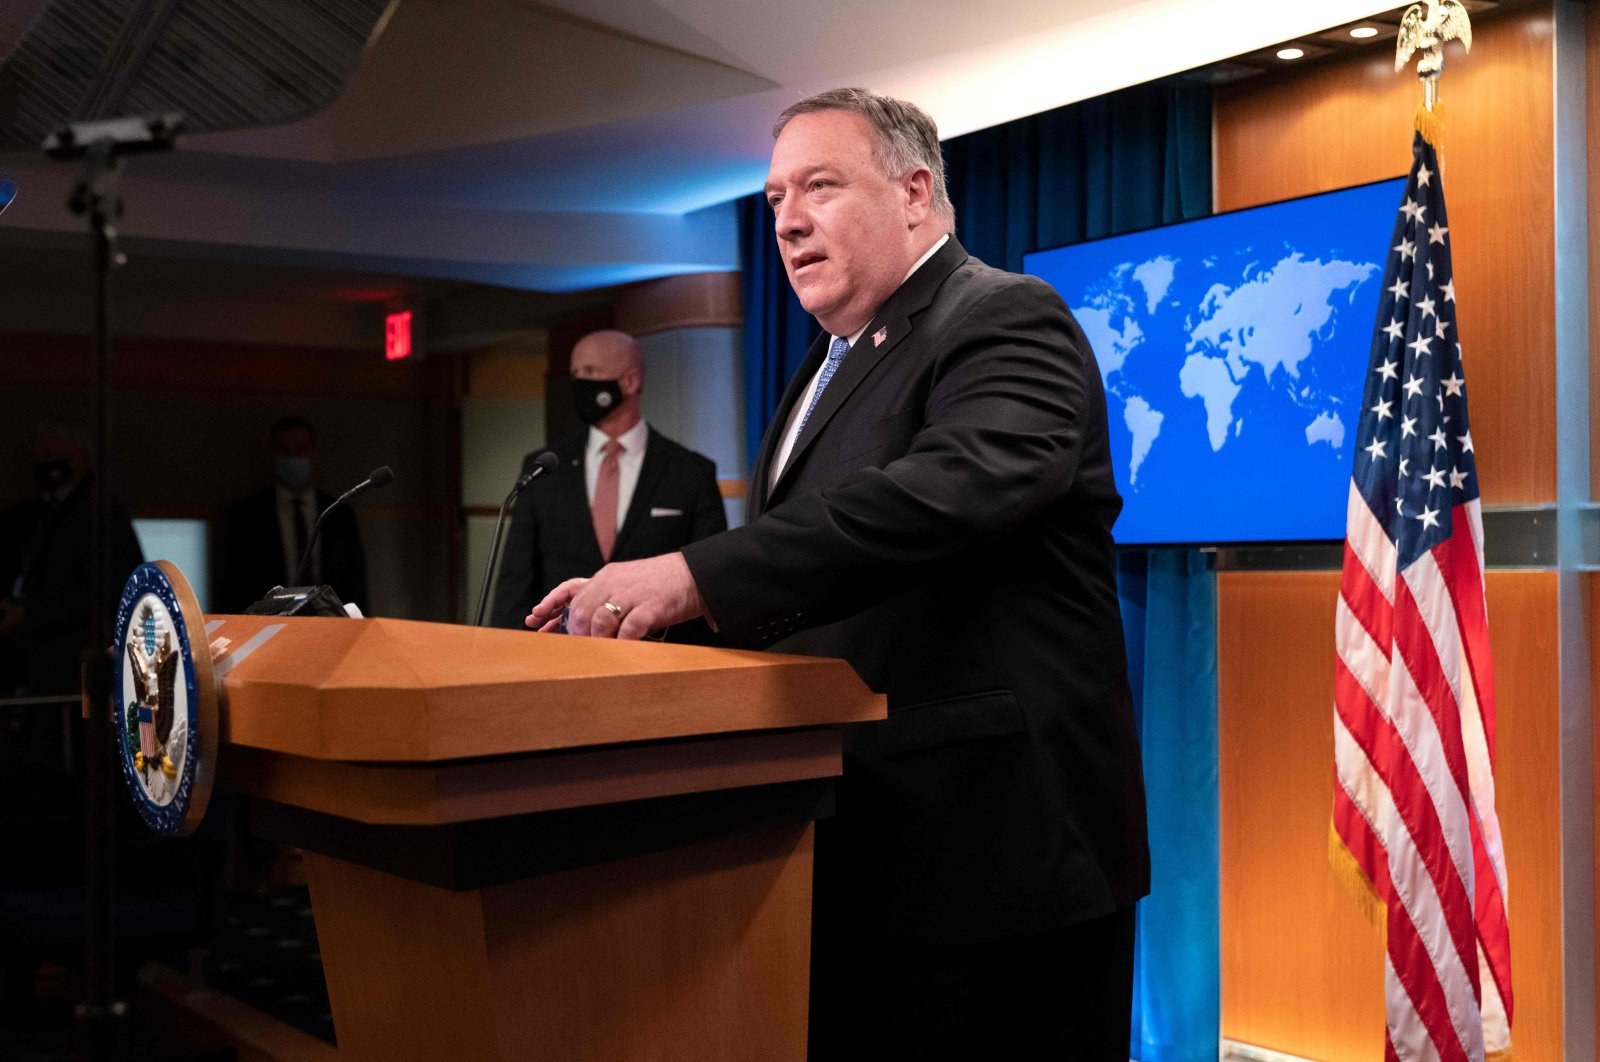 U.S. Secretary of State Mike Pompeo speaks during a media briefing at the State Department in Washington, D.C., Nov. 10, 2020. (AFP Photo)